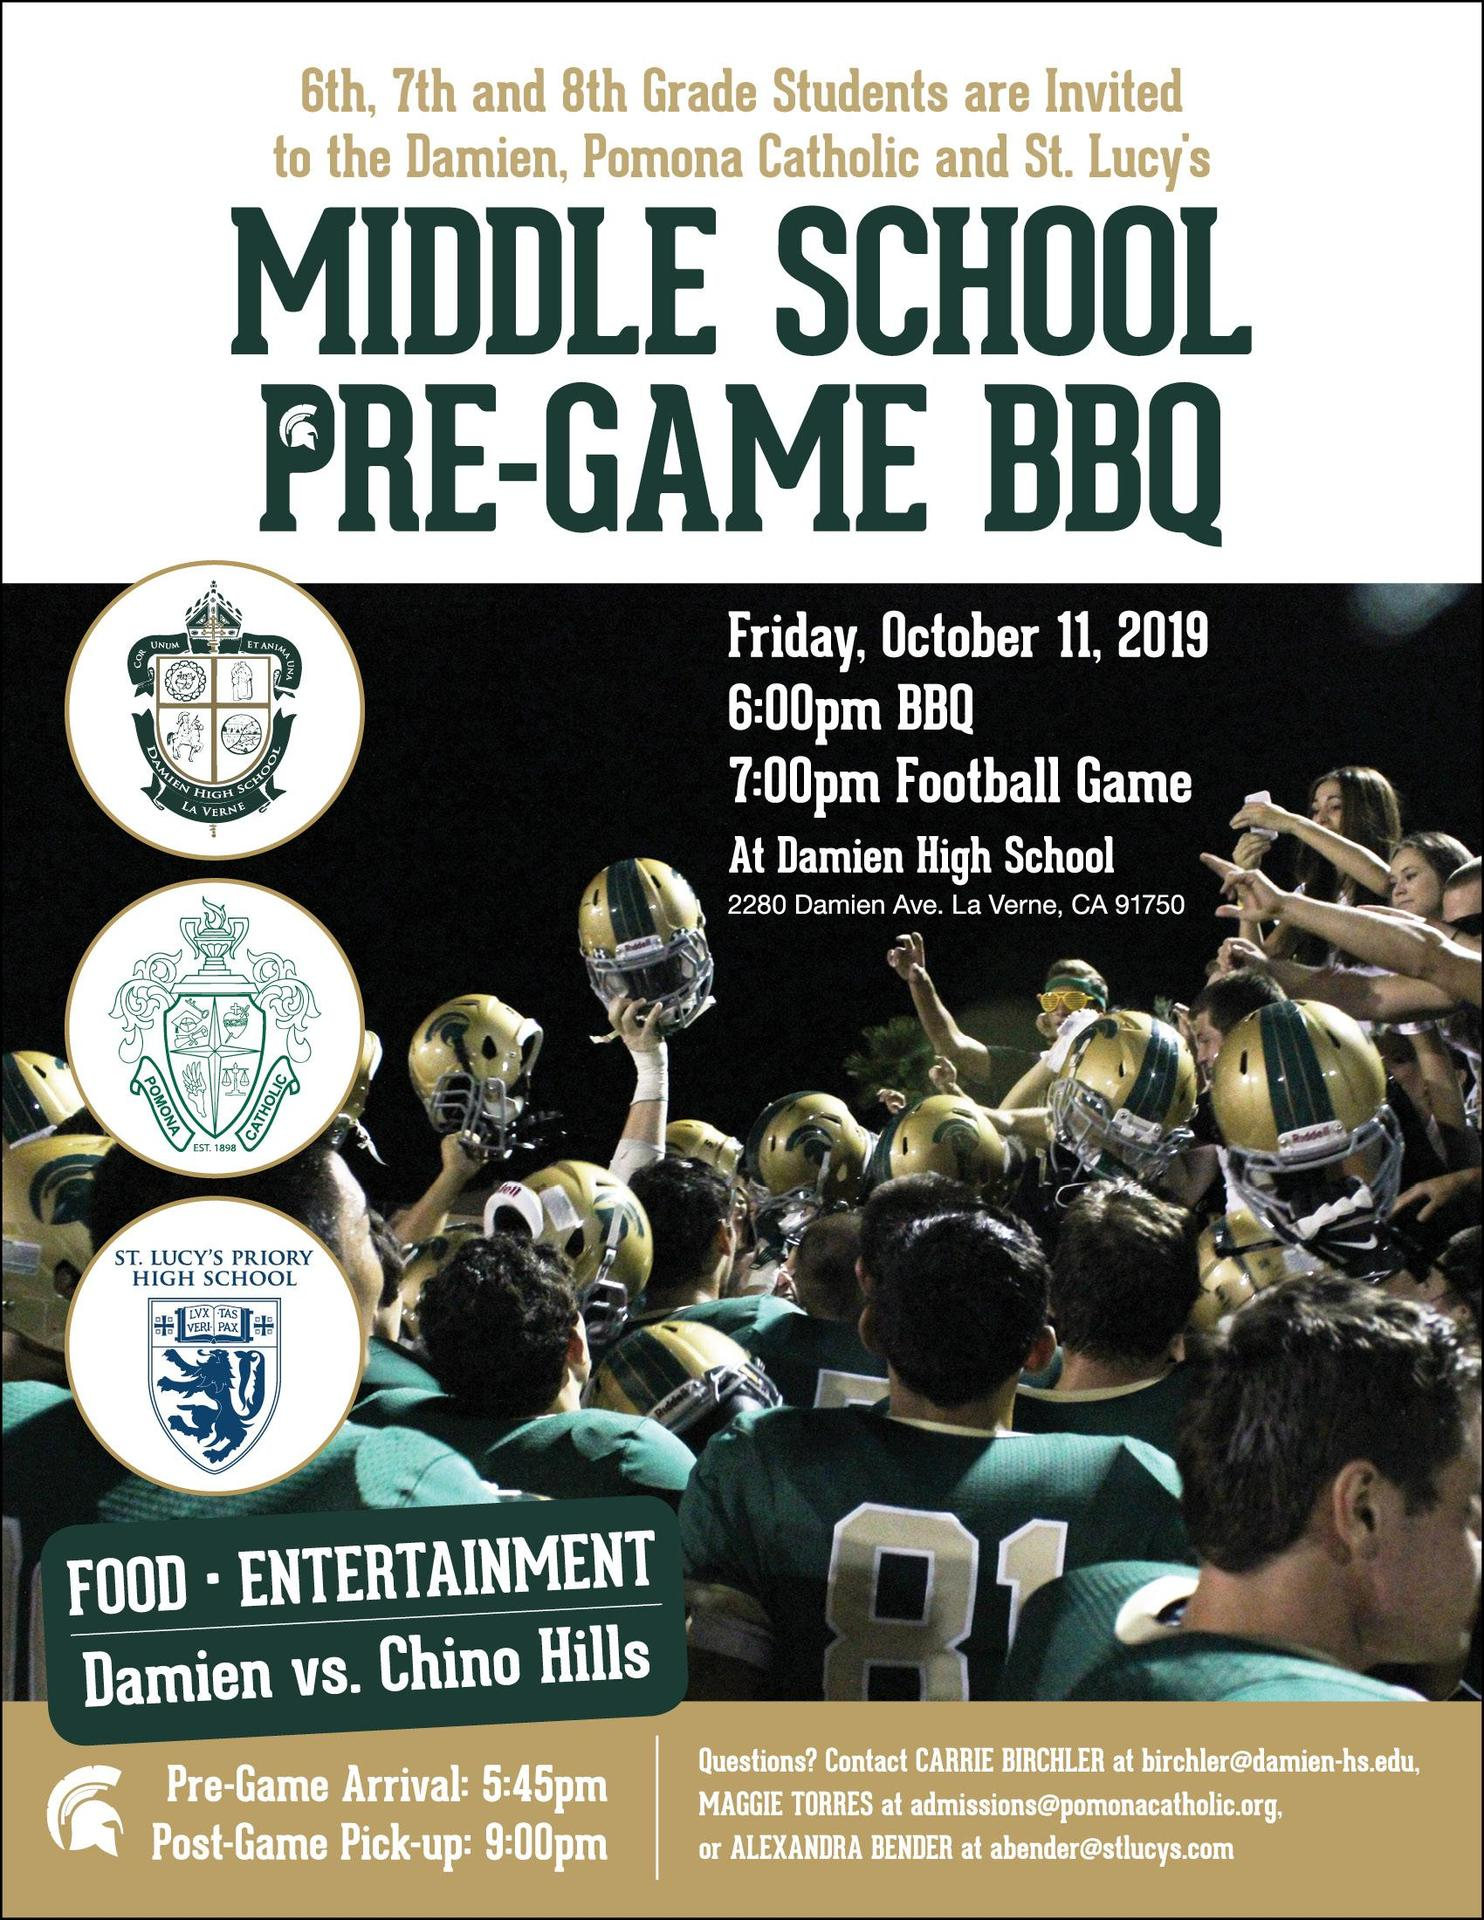 2019 Middle School Pre-game BBQ